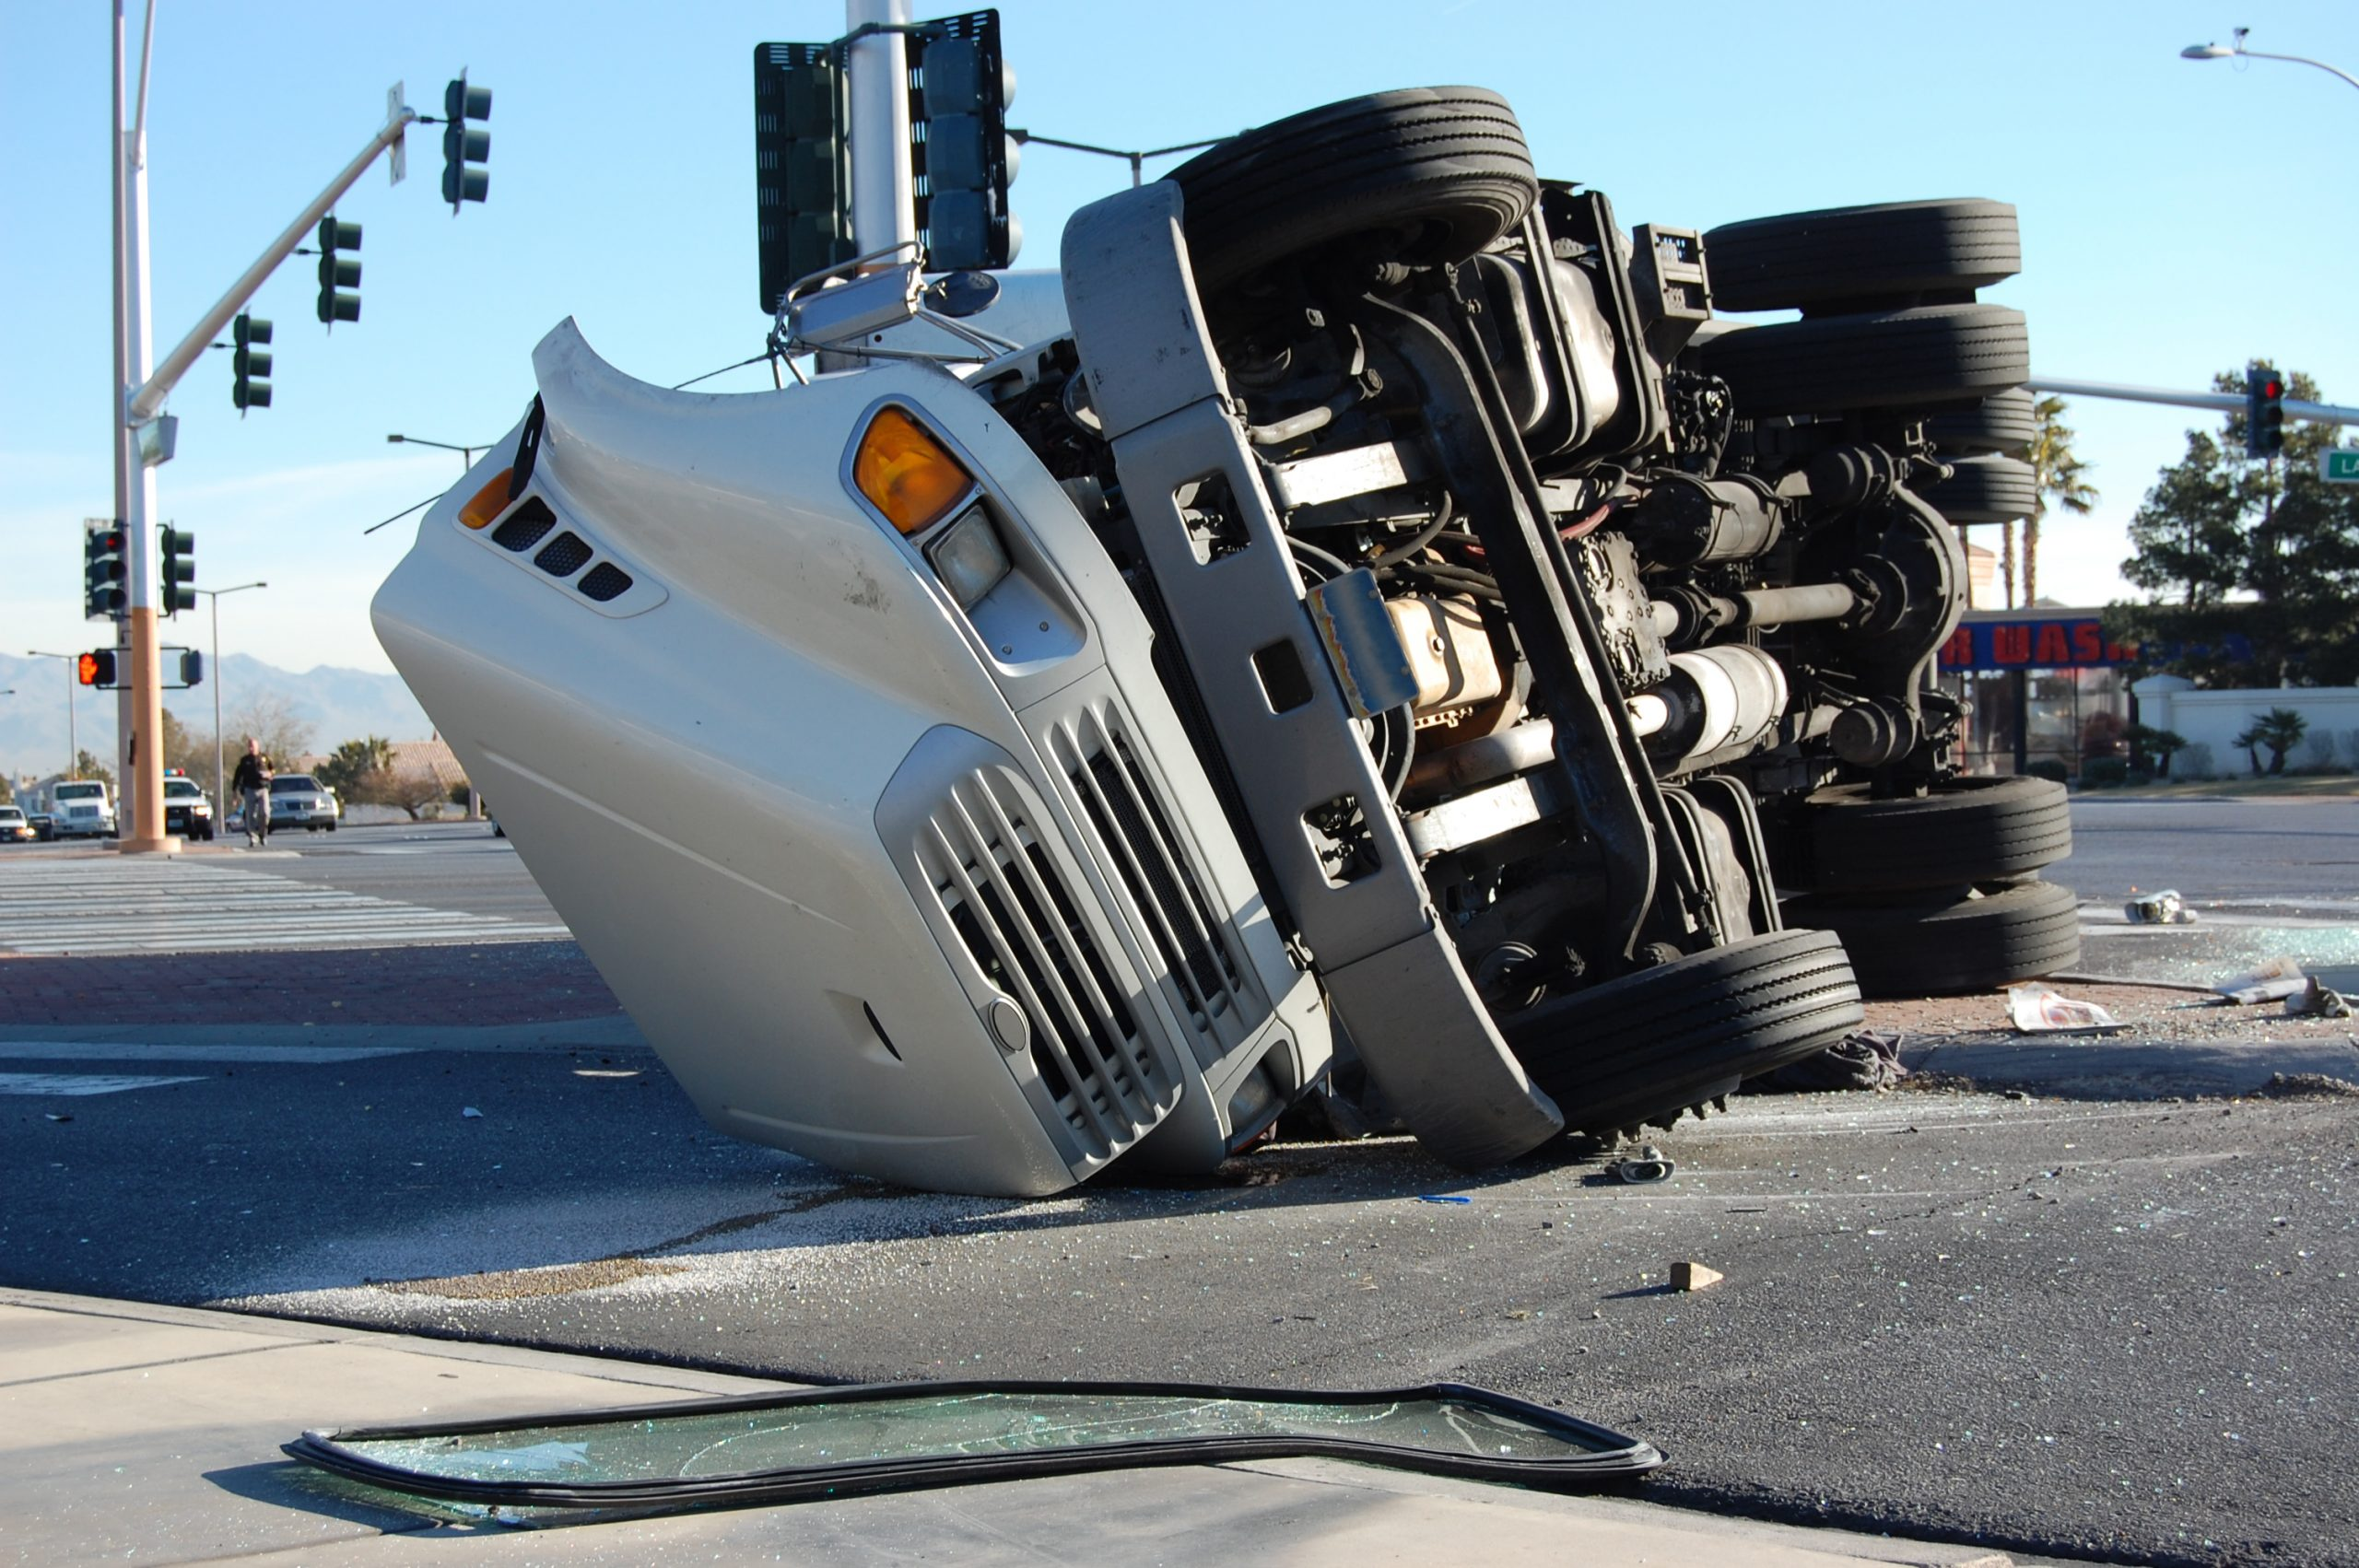 Picture of overturned truck